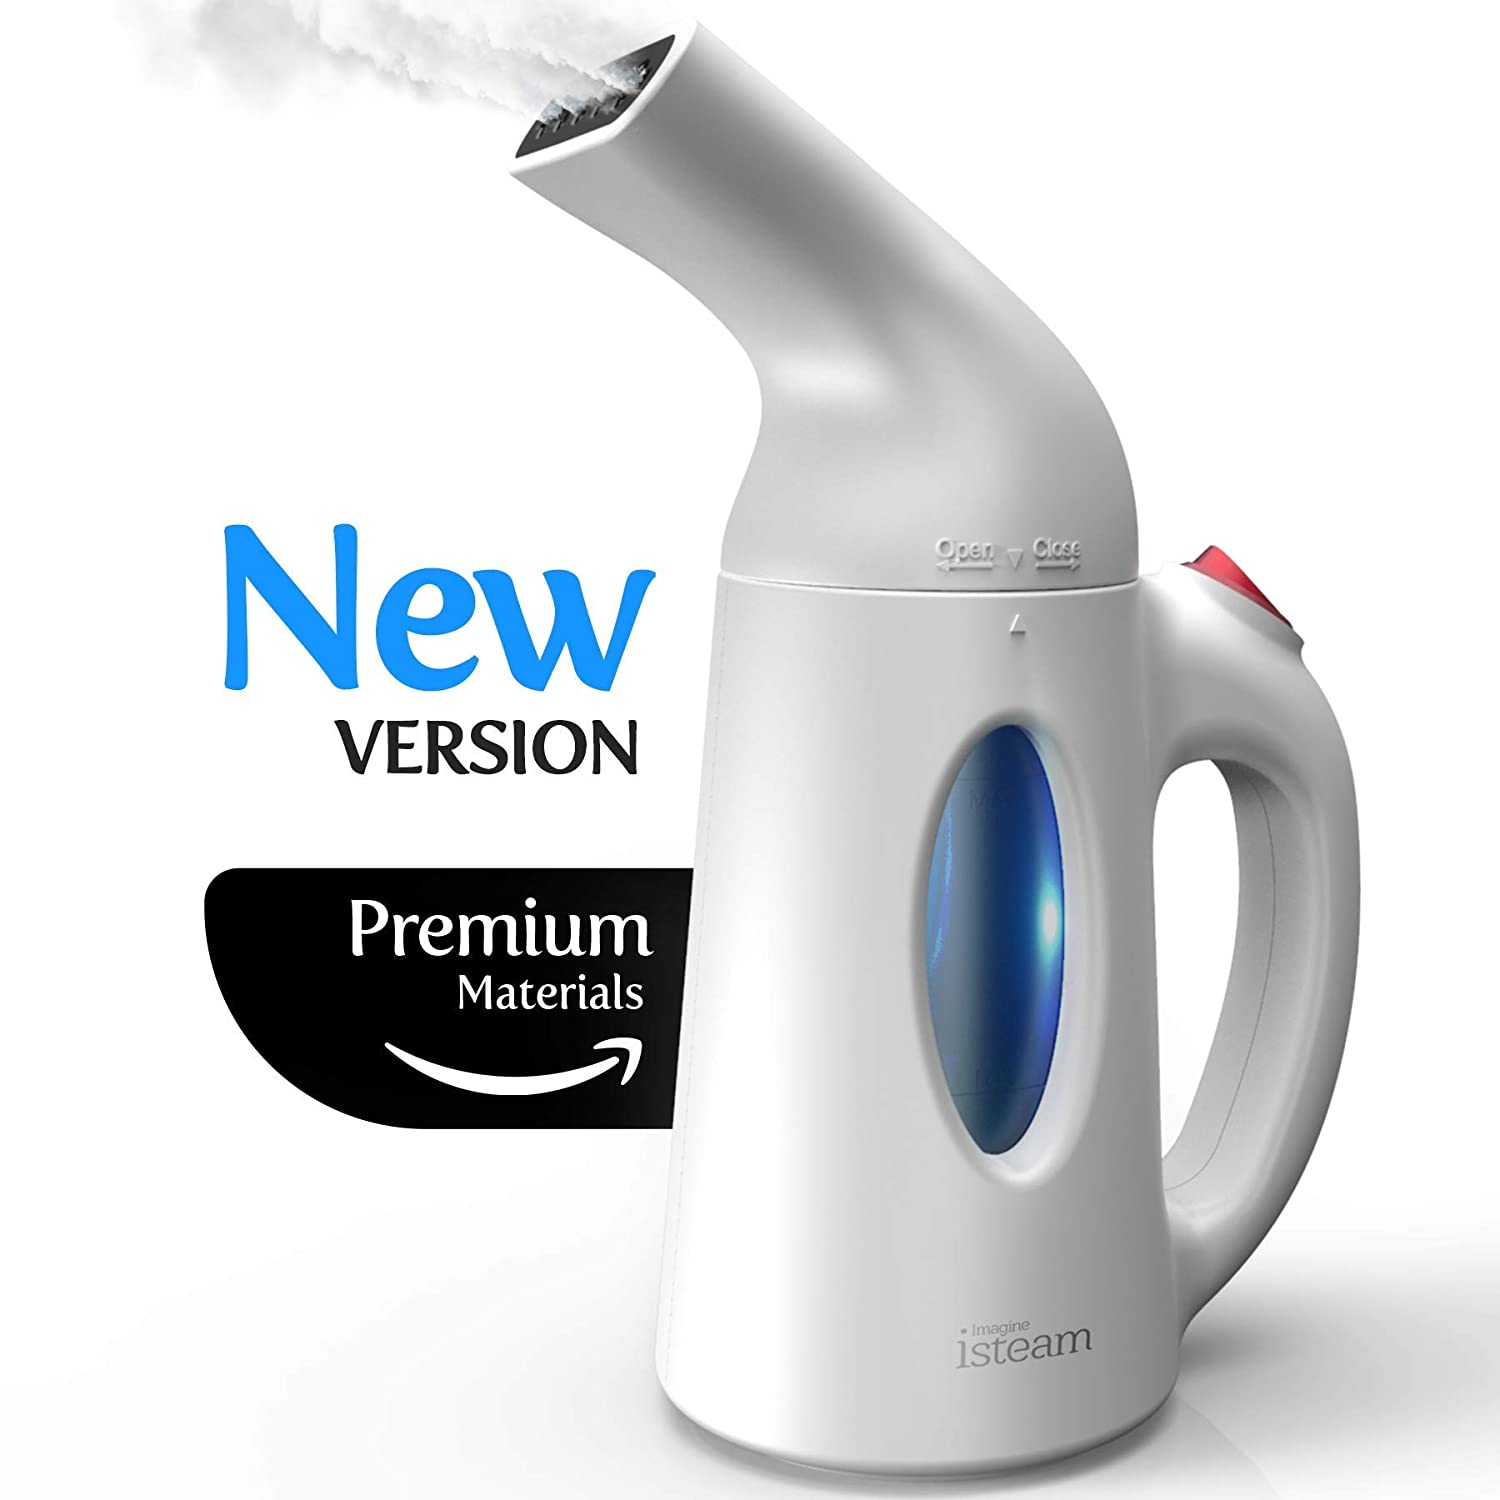 iSteam Steamer for Clothes [New Technology] Powerful Dry Steam Technology 7-in-1. Handheld Garment Wrinkle Remover. Portable Steamer, Mini Clothing Accessory. for Home / Travel [H106]